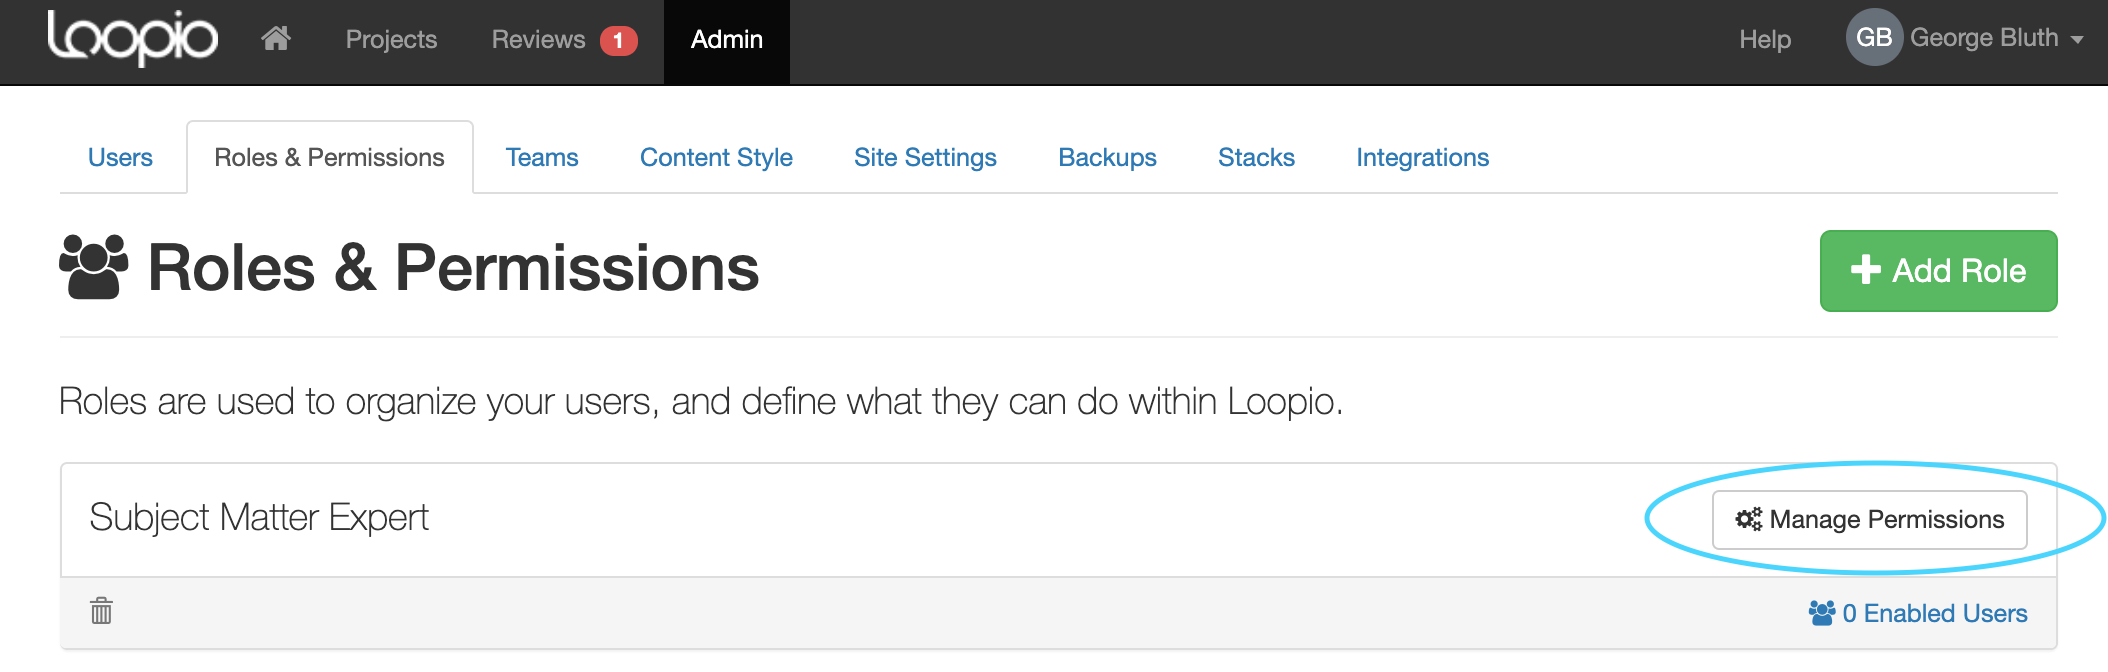 A screenshot of the Loopio Admin Roles and Permissions page, Manage Permissions button